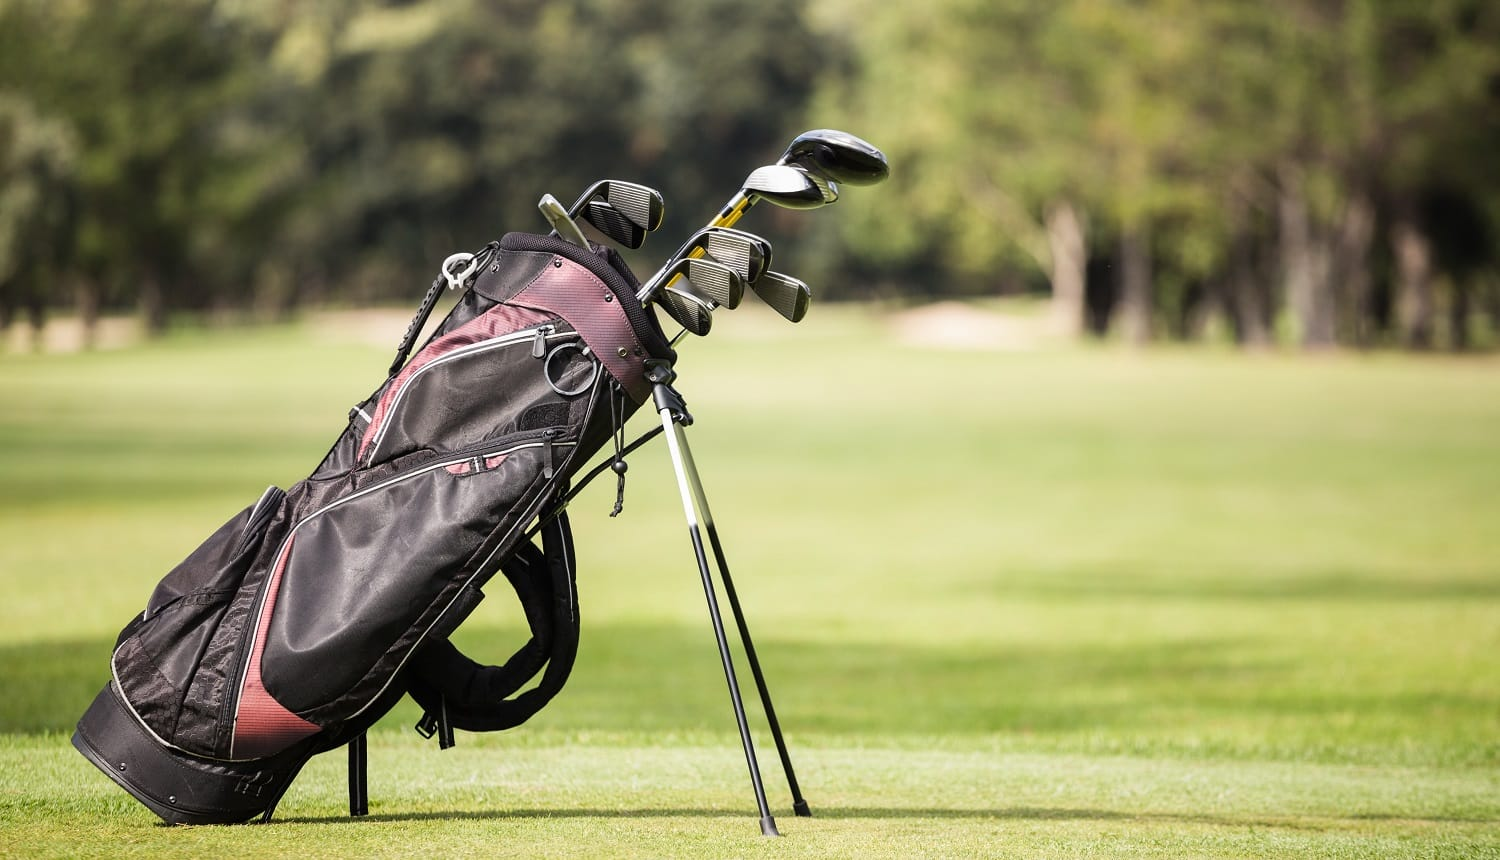 Filled golf bag with golf club on the field